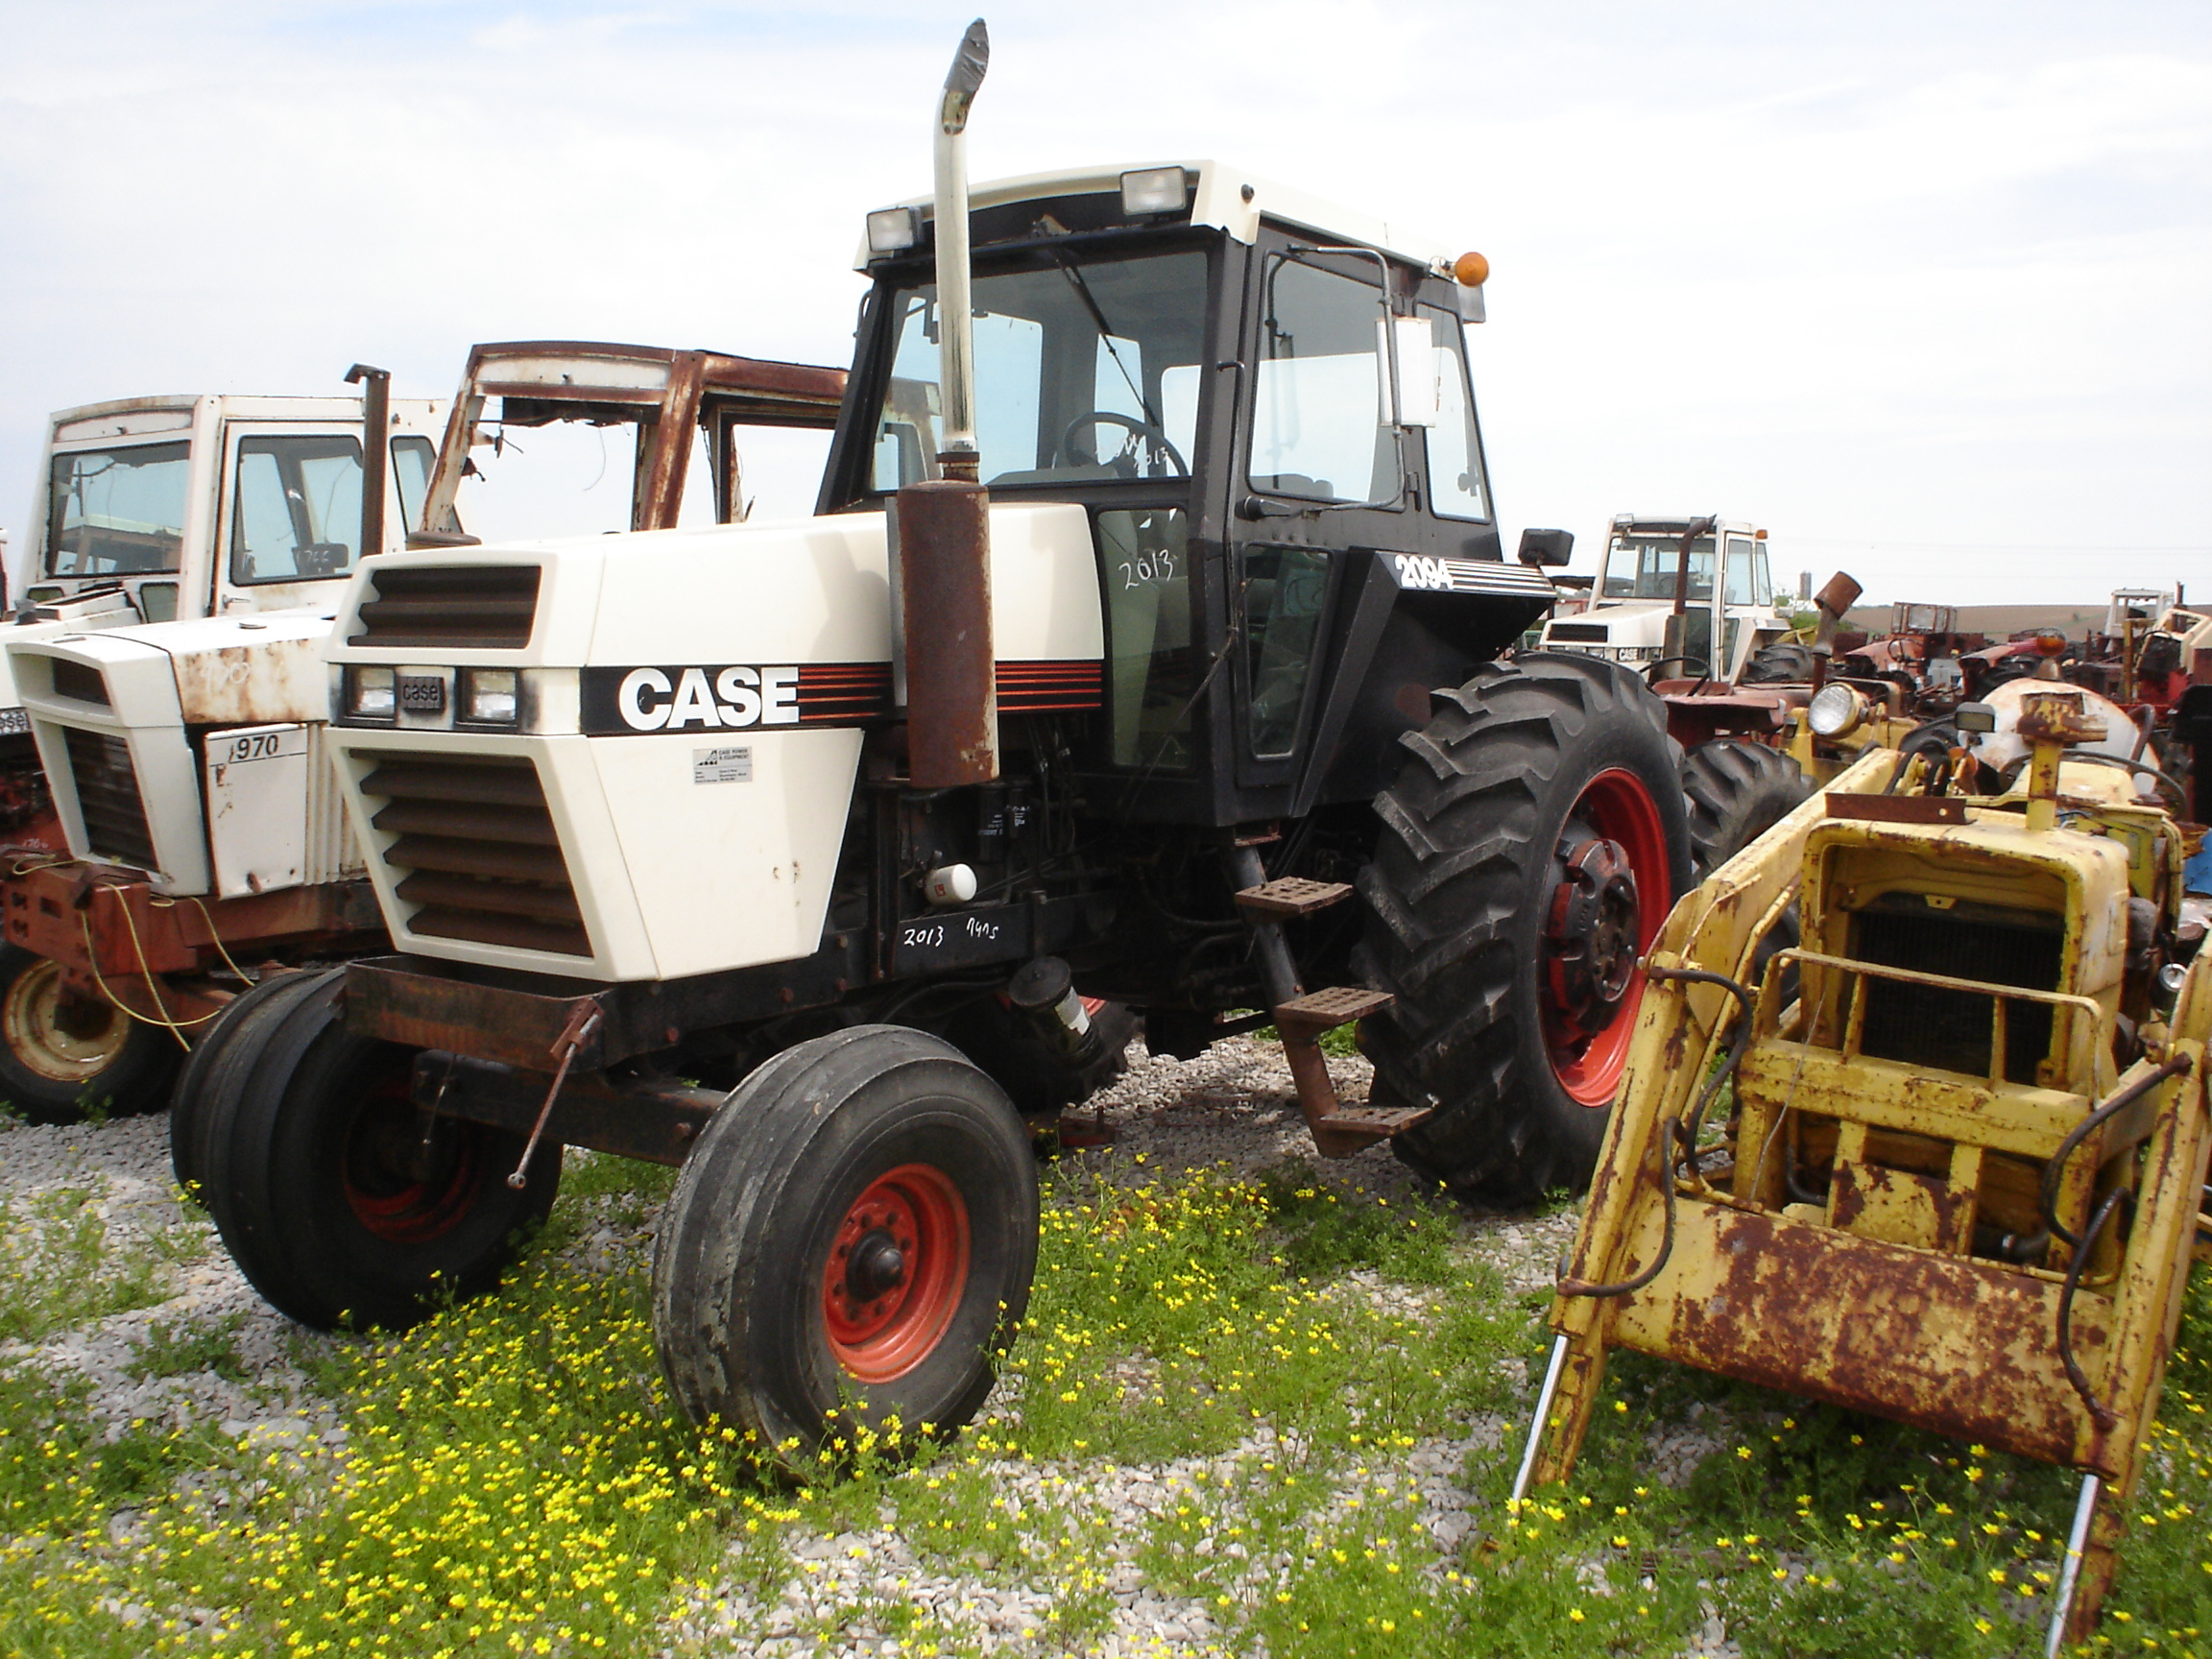 Case 2094 | Cook Tractor Co Parts and Sales